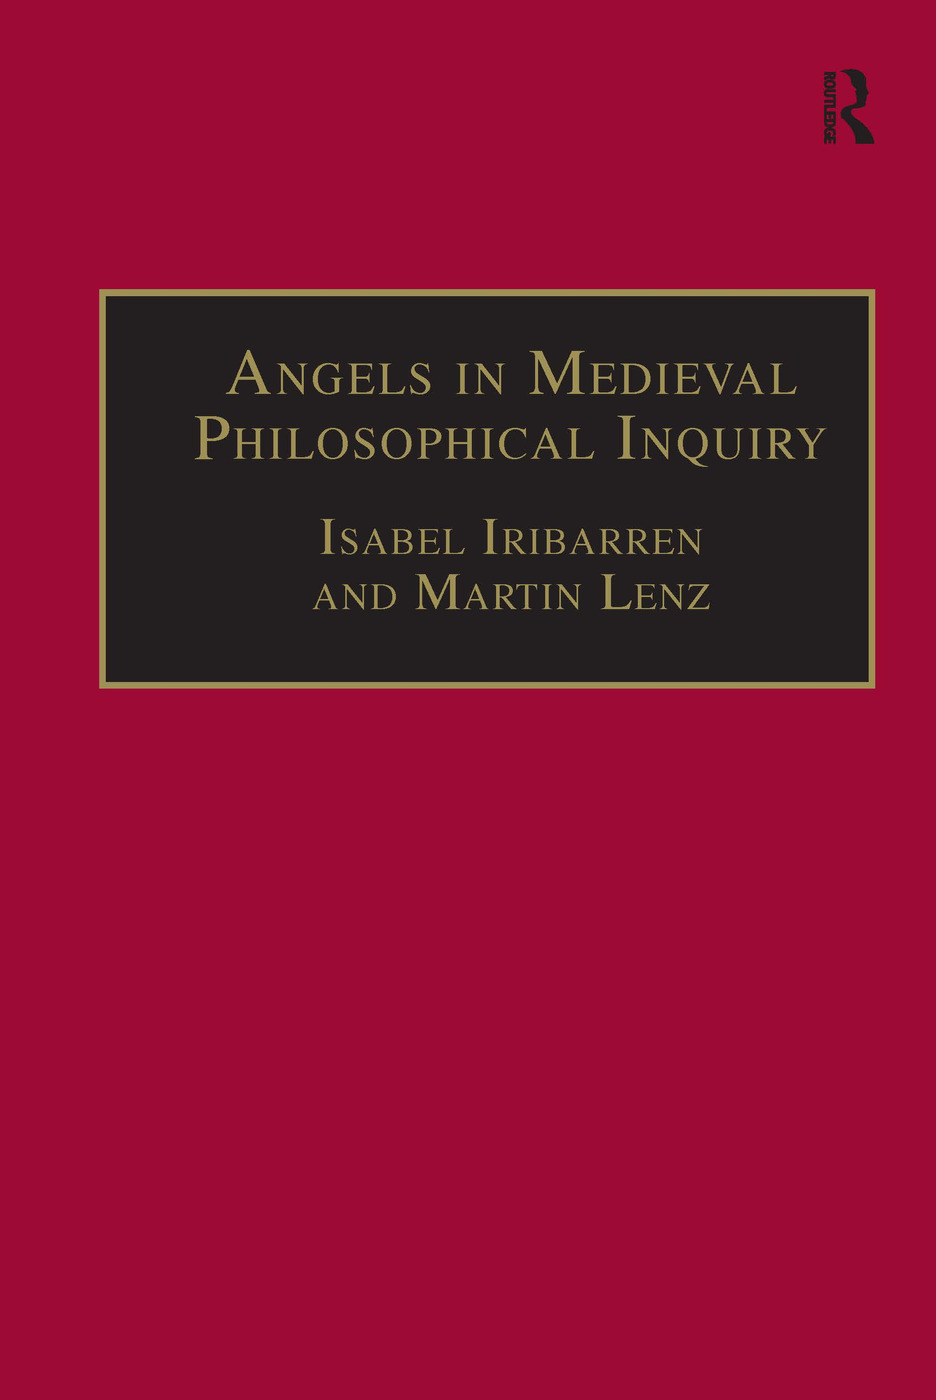 Angels in Medieval Philosophical Inquiry